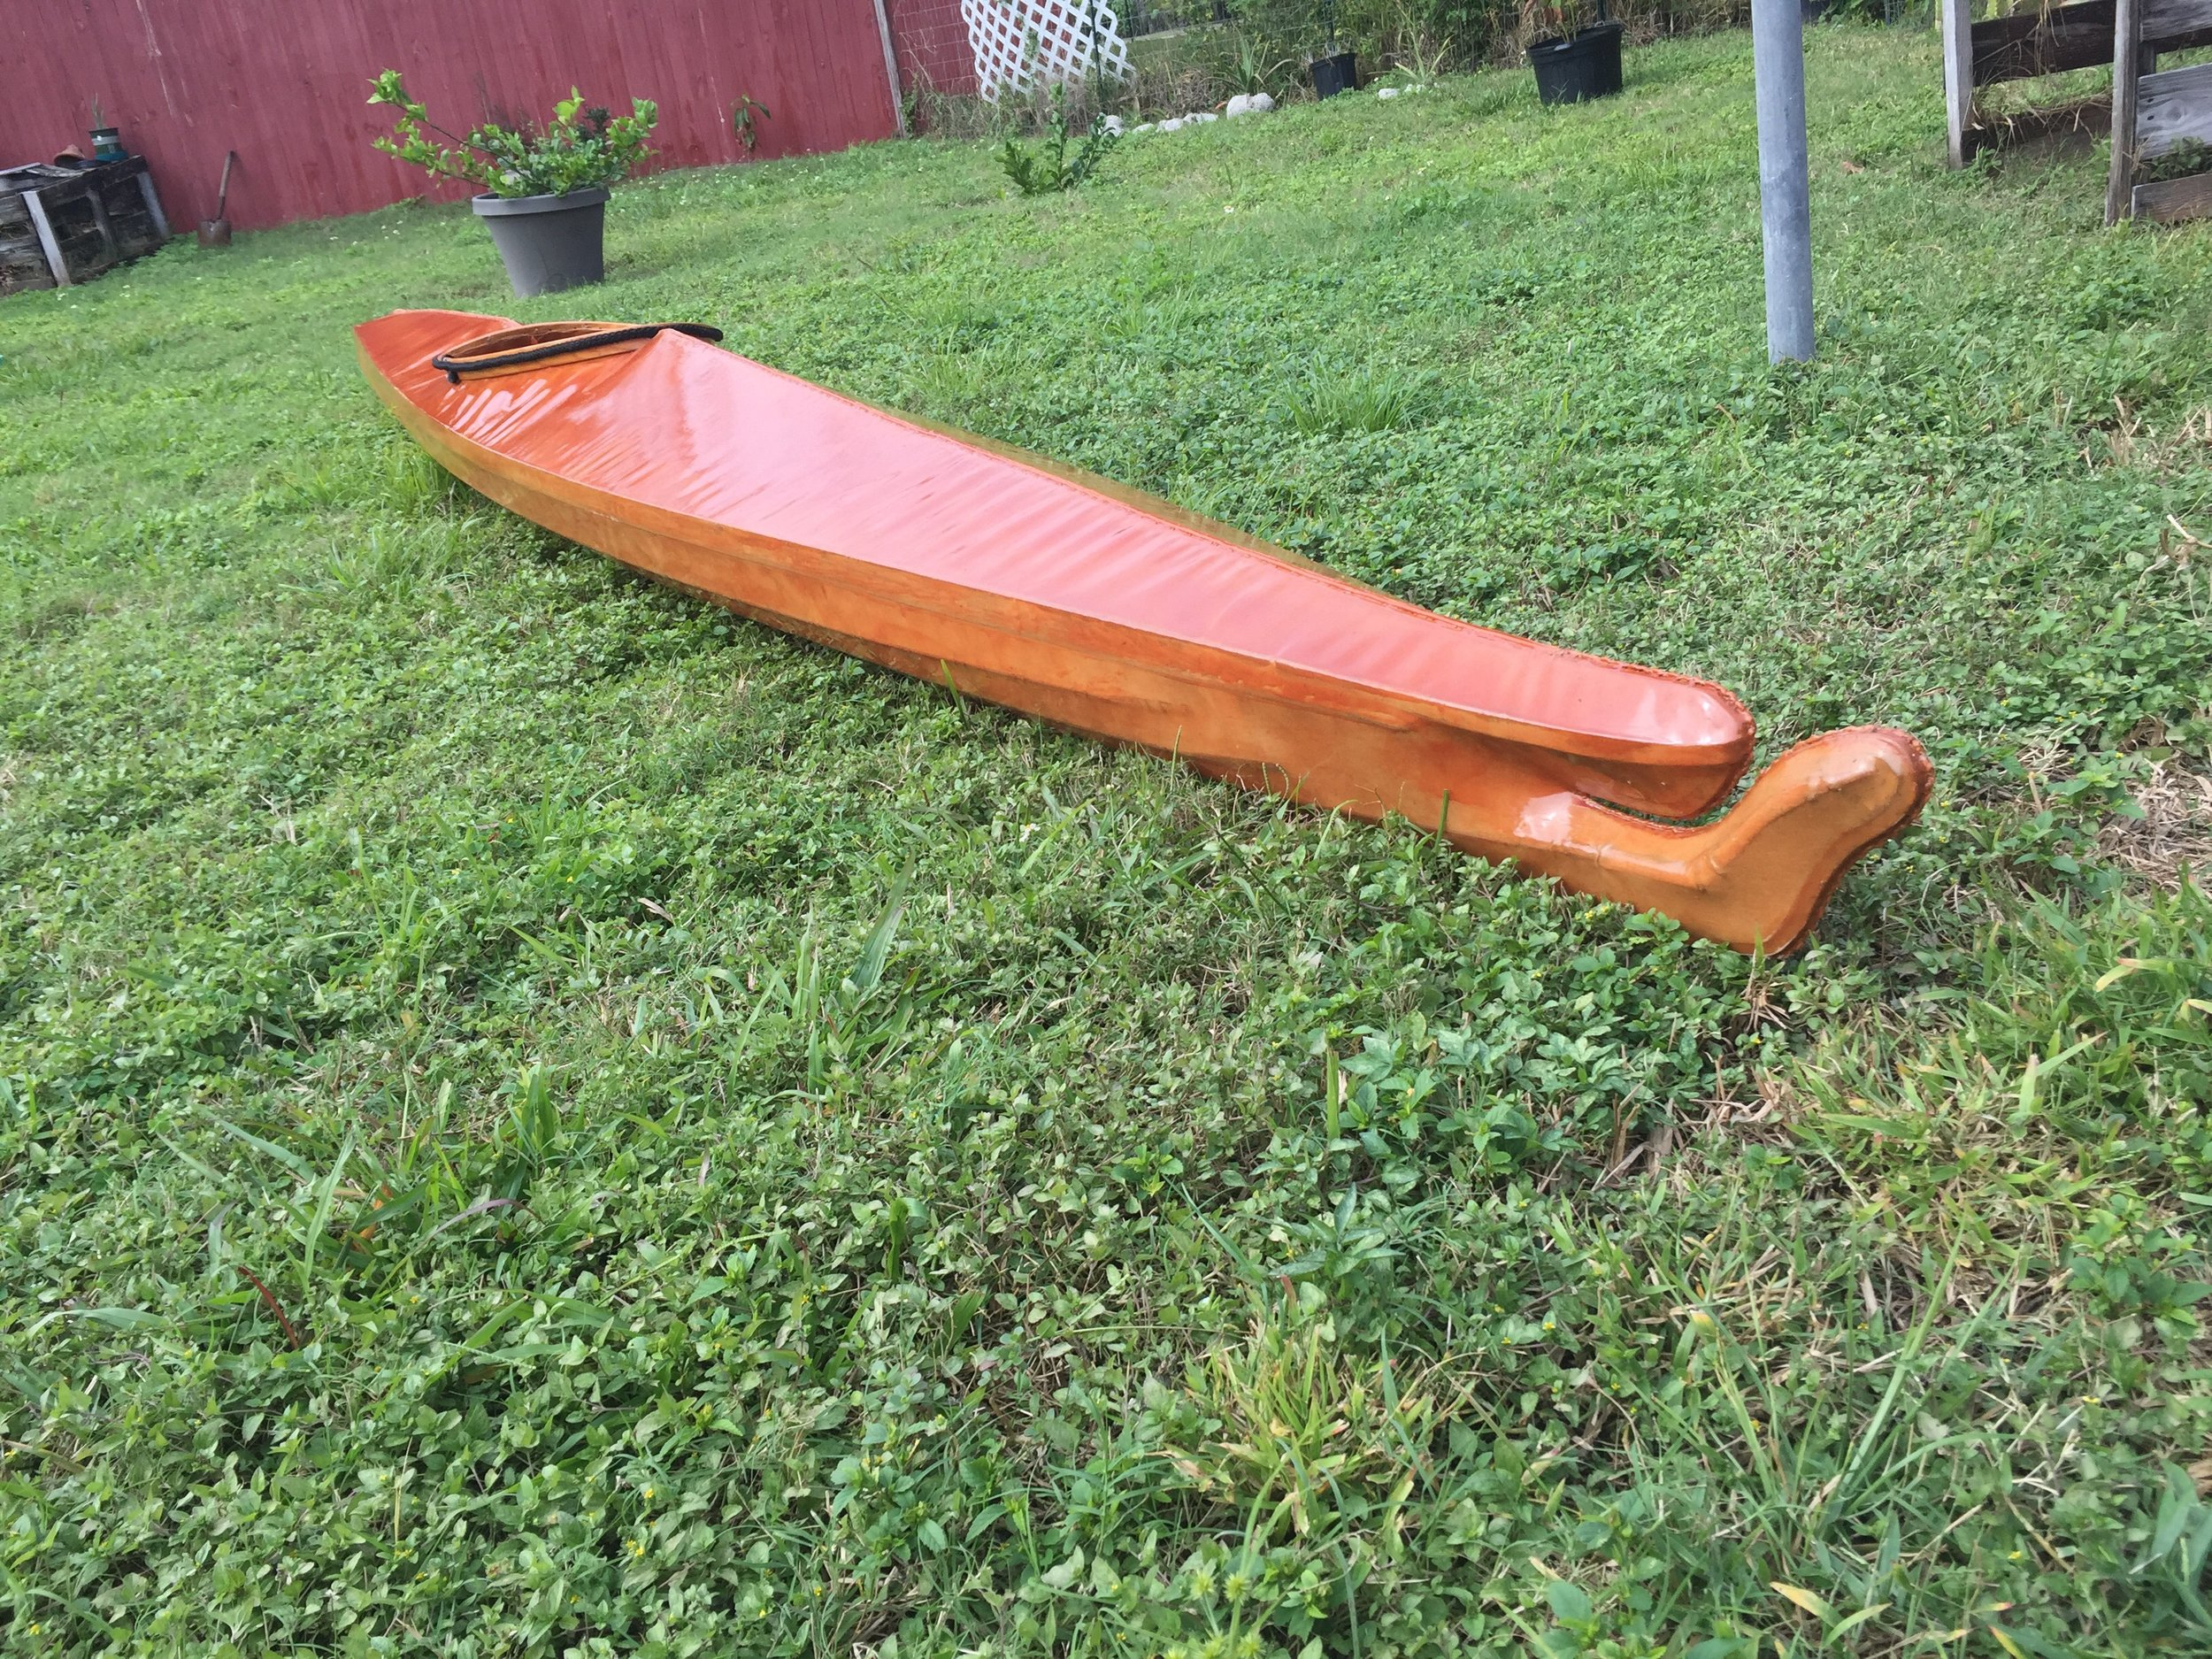 Beautiful Baidarka: Used a handful of times and comes with a paddle and custom dry bags all handmade and in good condition. $1500 OBO. E-mail sales@FloridaKayak School.com for more photos. Located in Cape Canaveral Florida. Text 607 220 6092